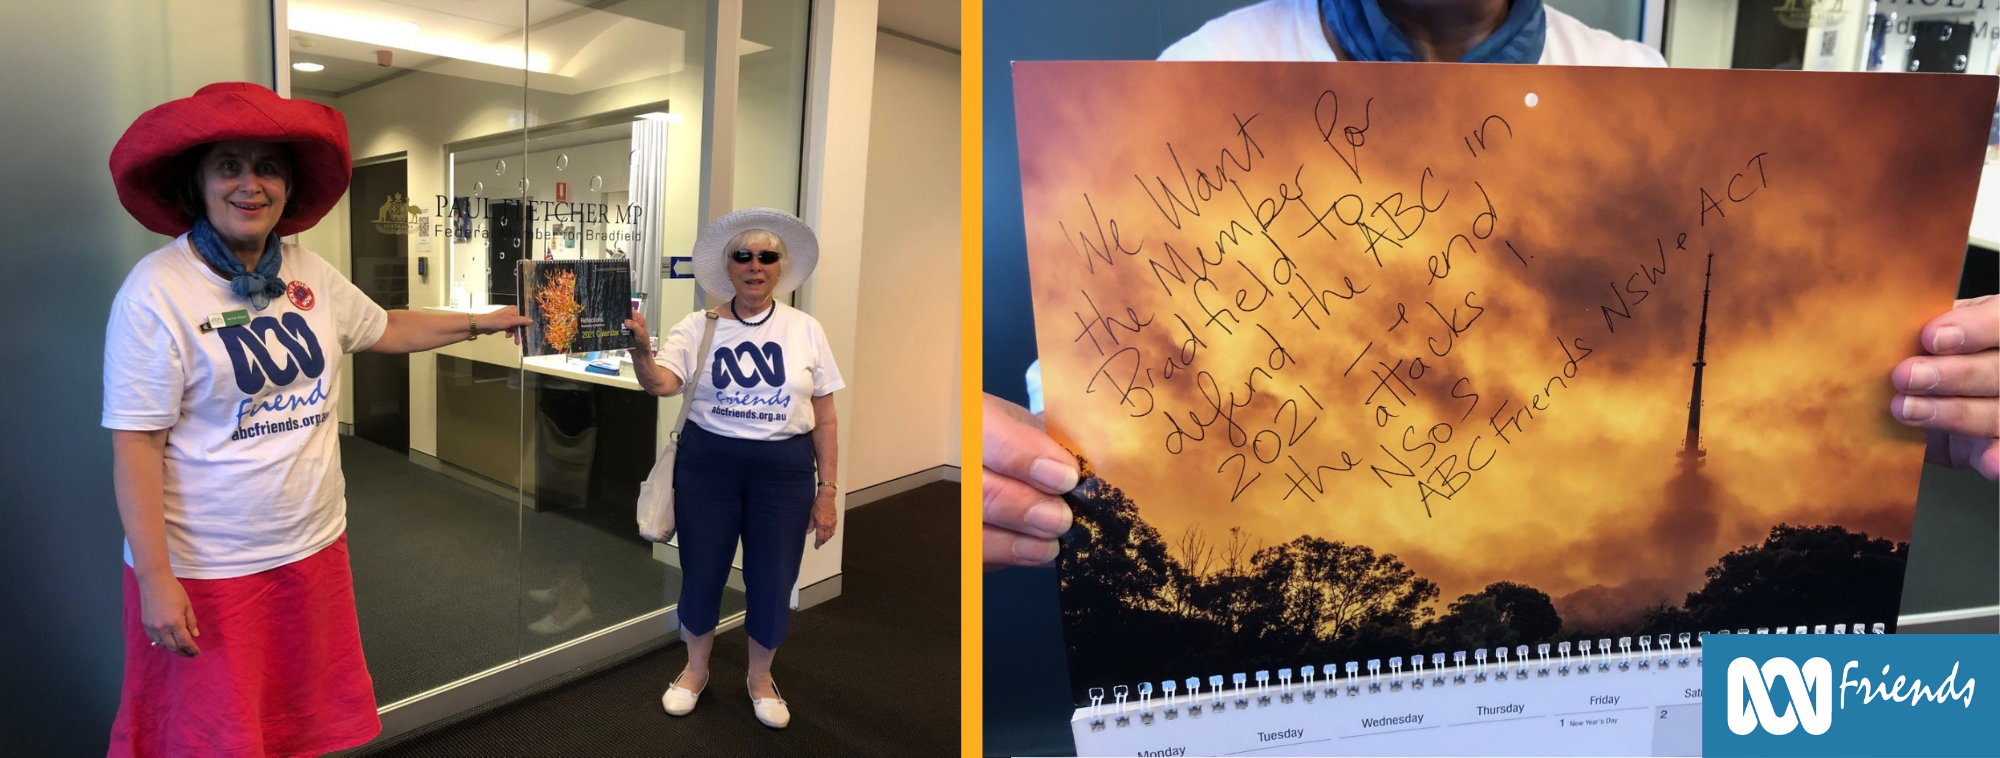 Left: ABC Friends delivering calendar to Mr Fletcher's office. Right: Close up of the calendar